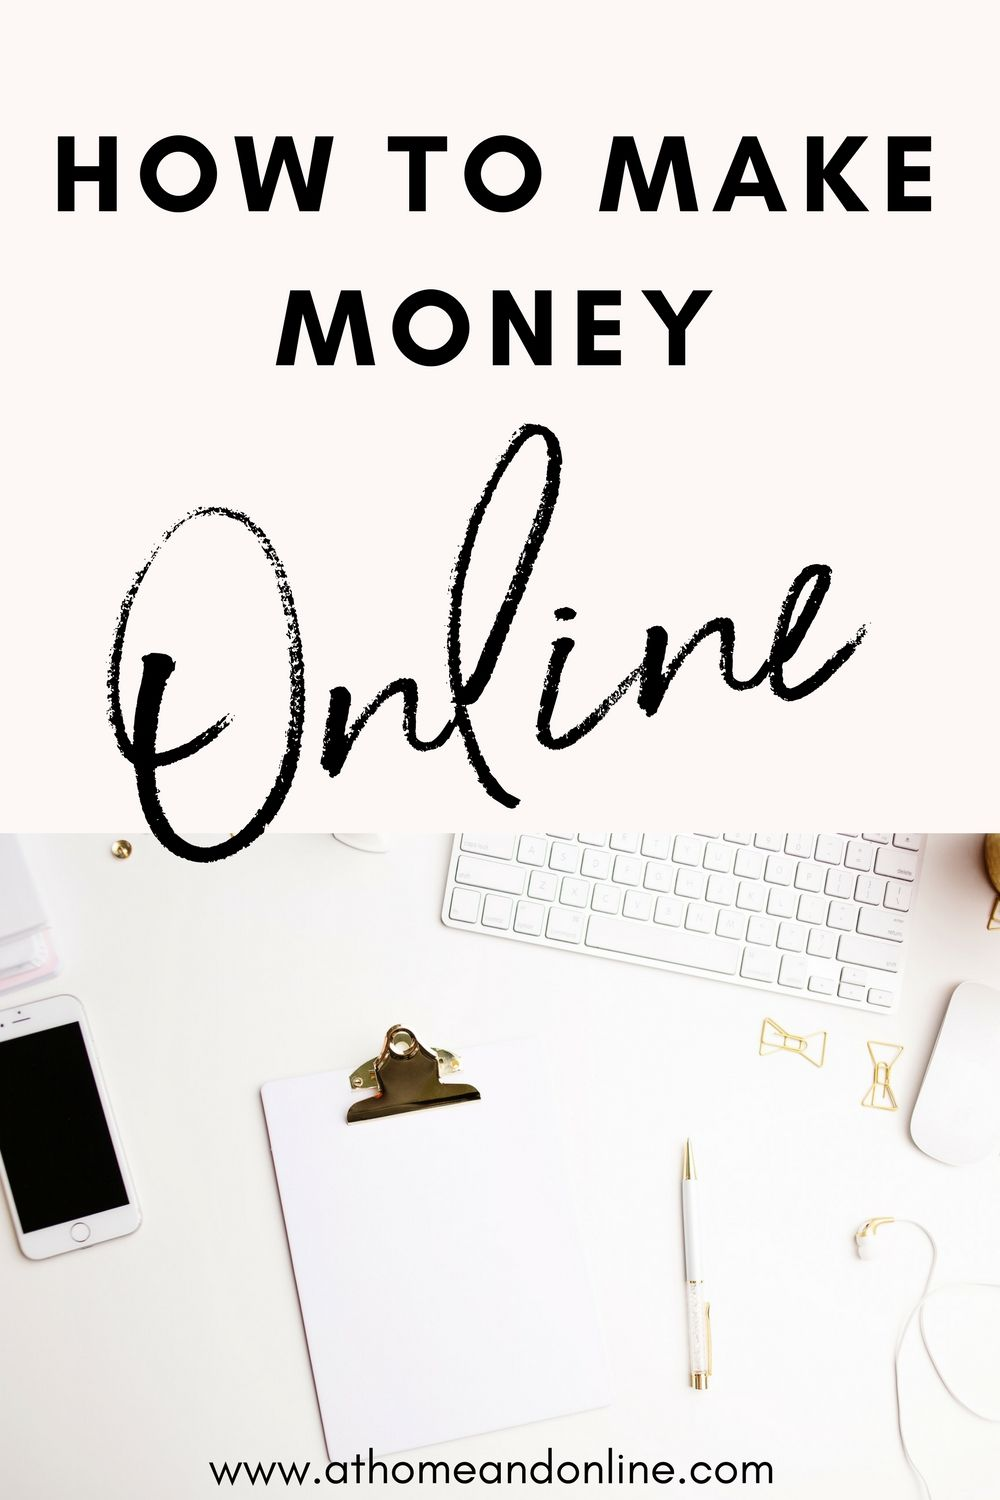 How To Make Money Online: Ideas For Working From Home